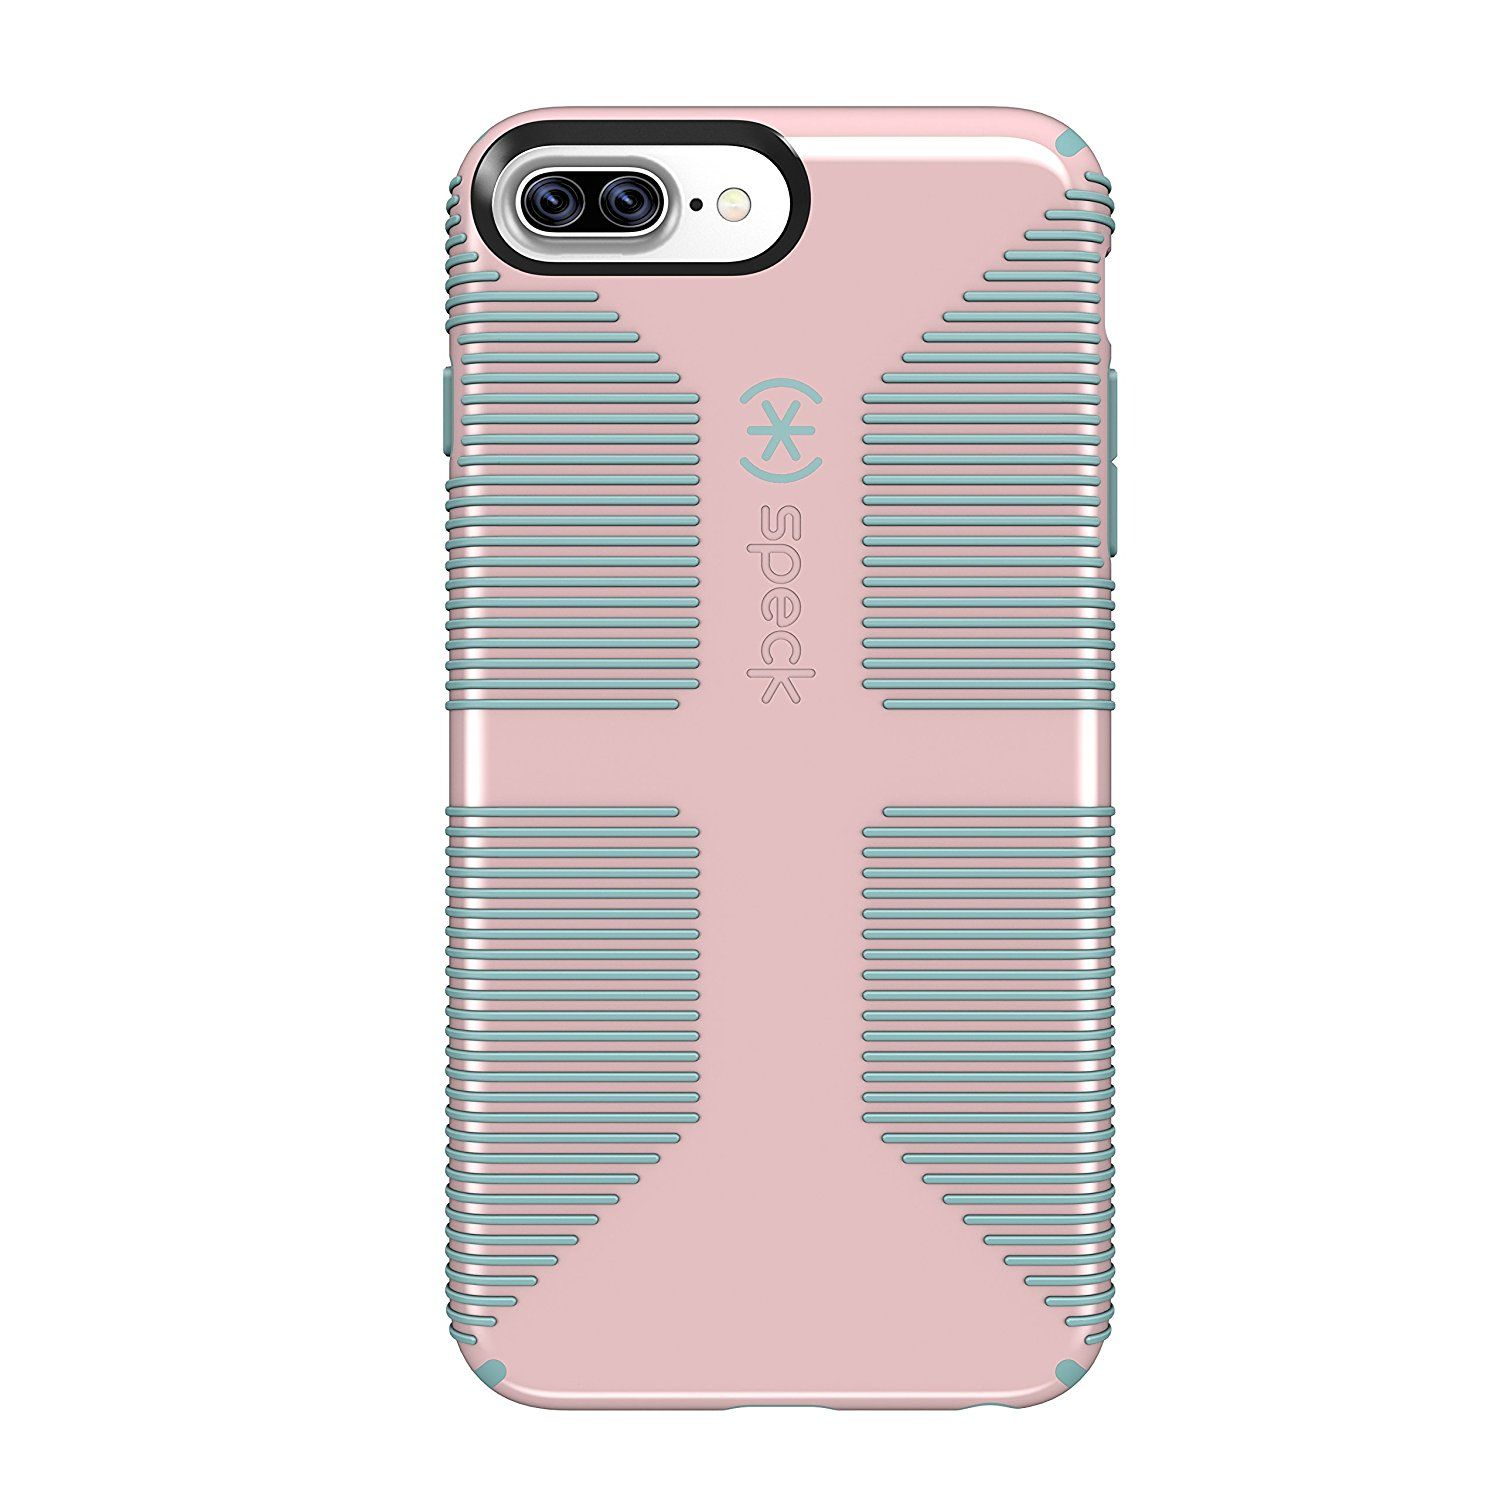 Pin on iphone 7 case